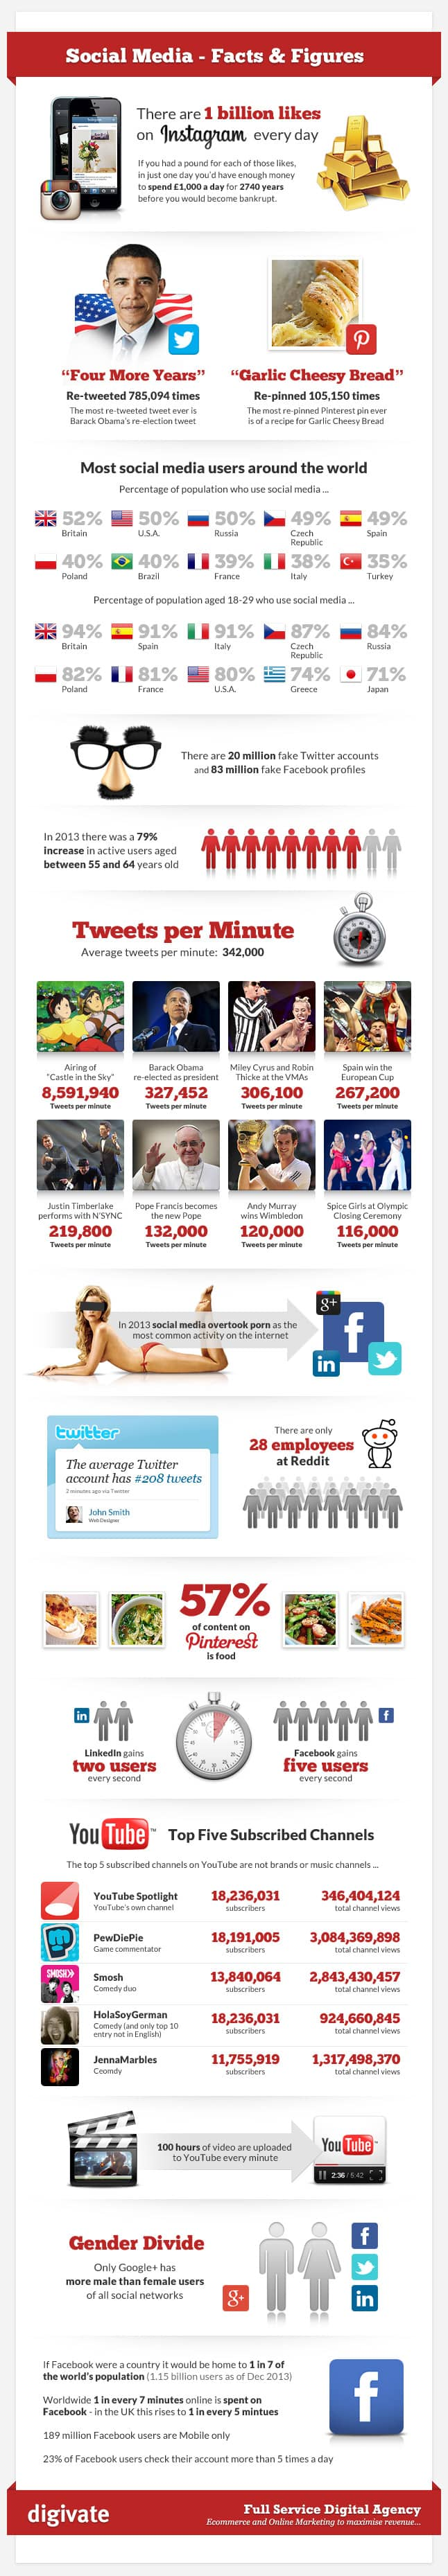 Social Media - Facts & Figures